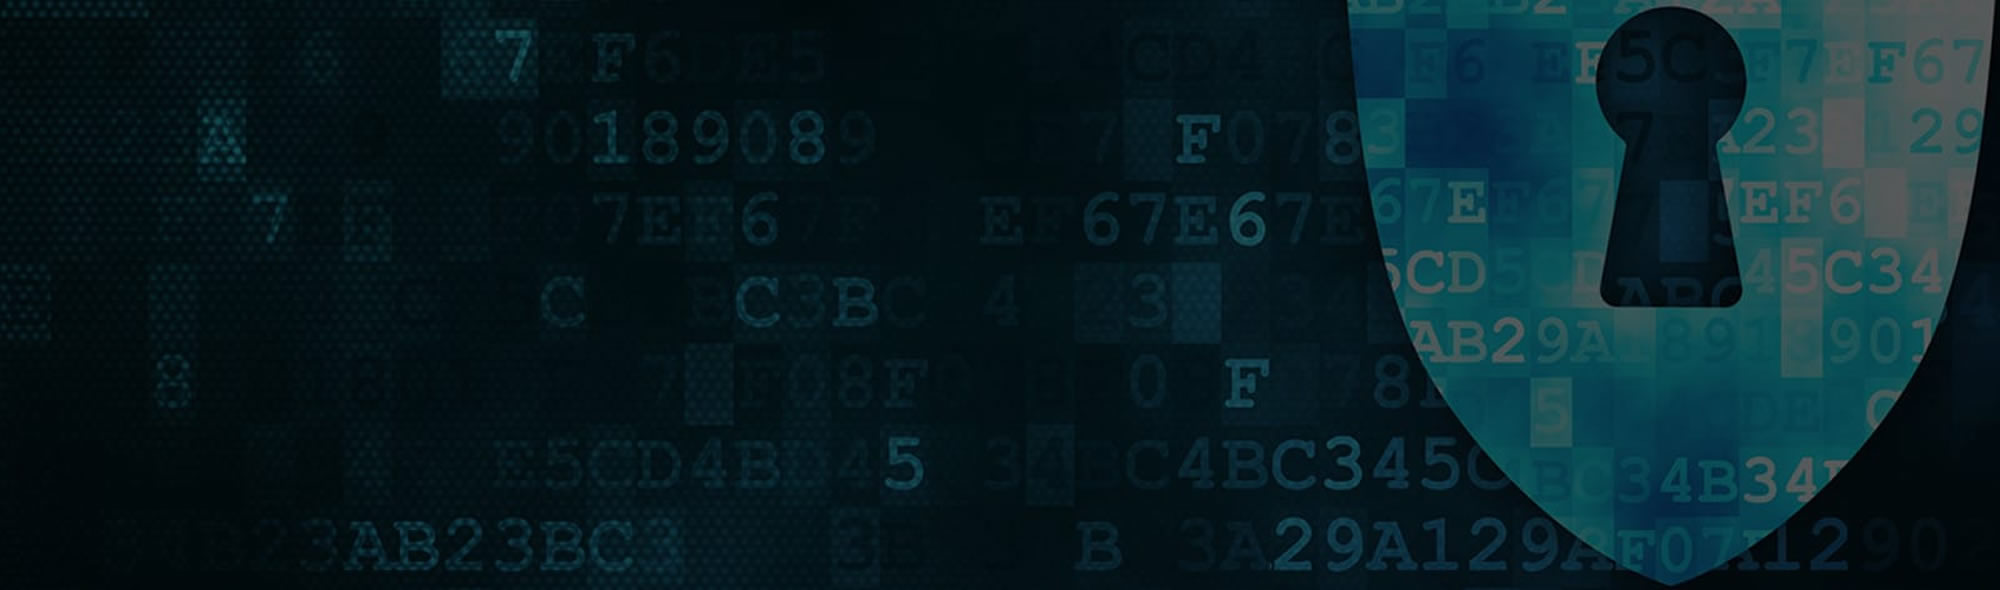 Binary code with security shield symbol.